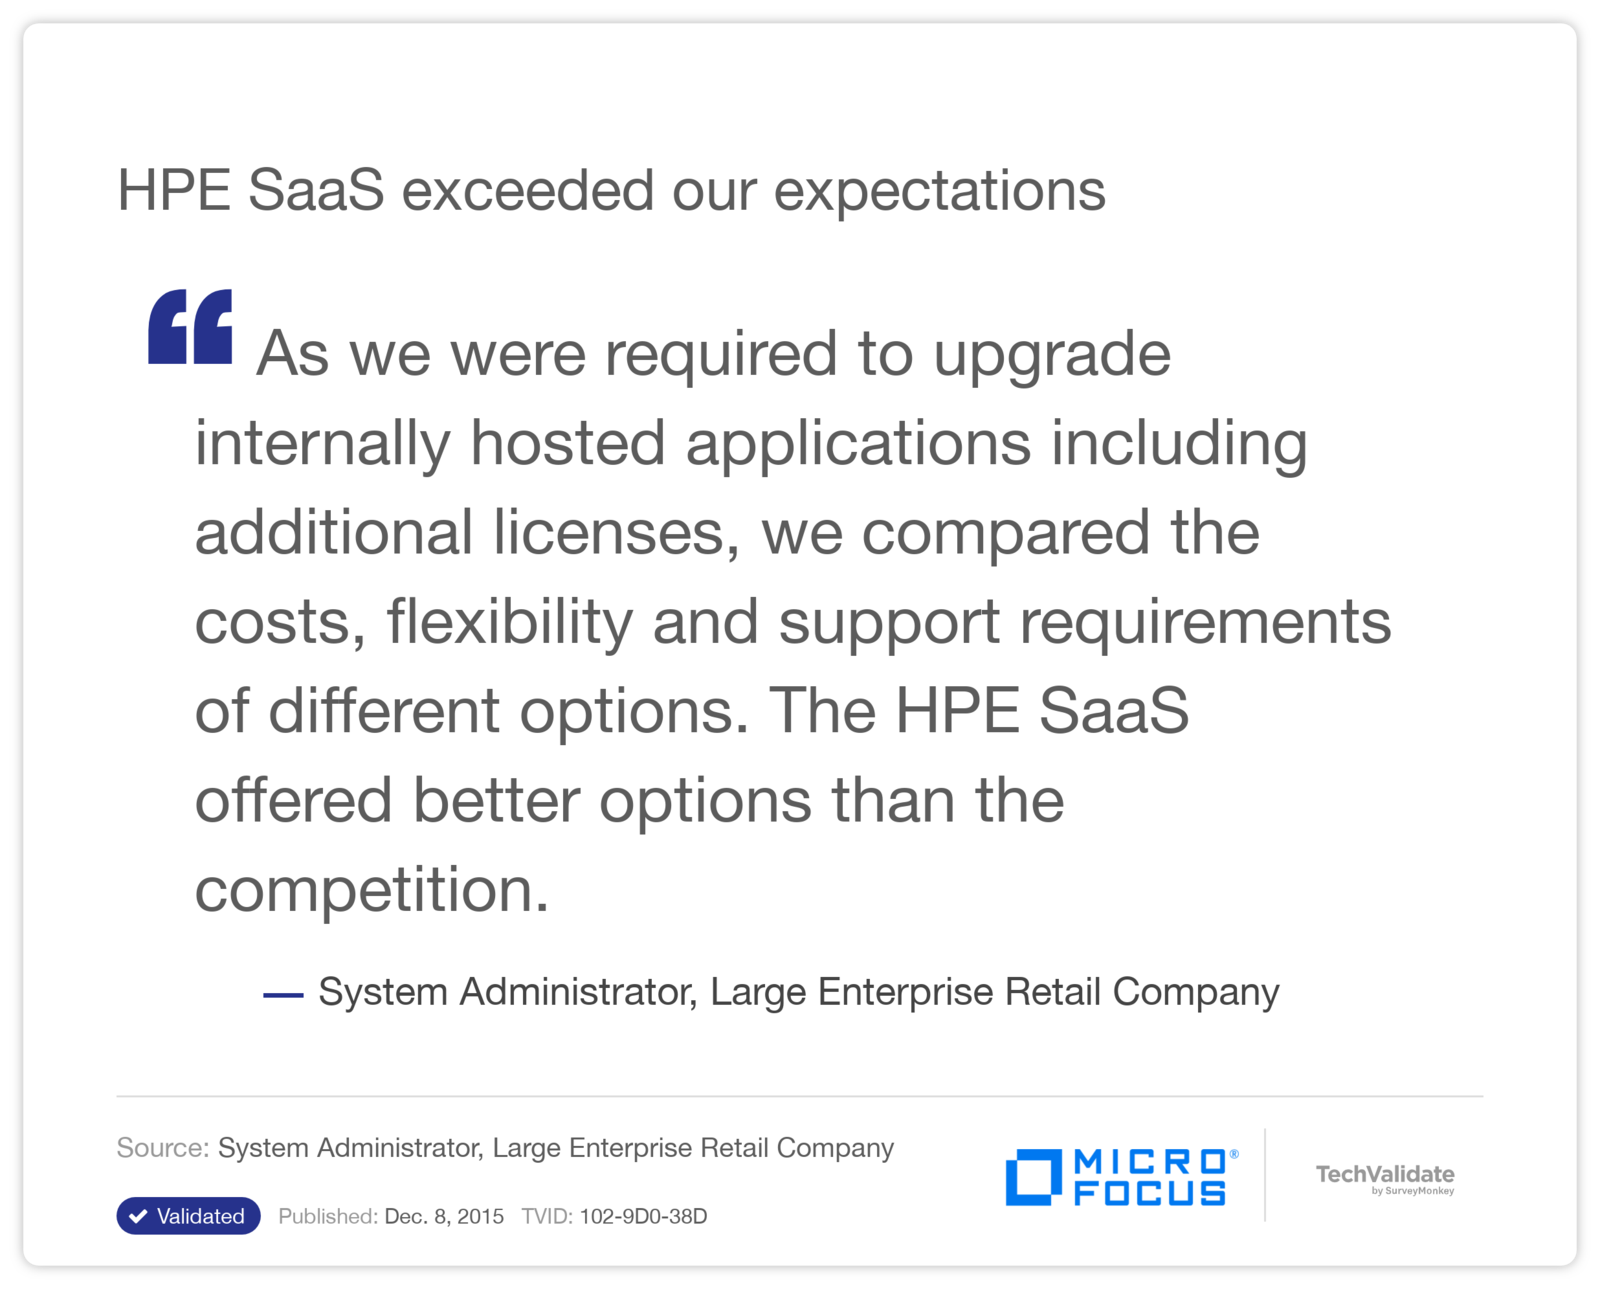 HPE SaaS exceeded our expectations